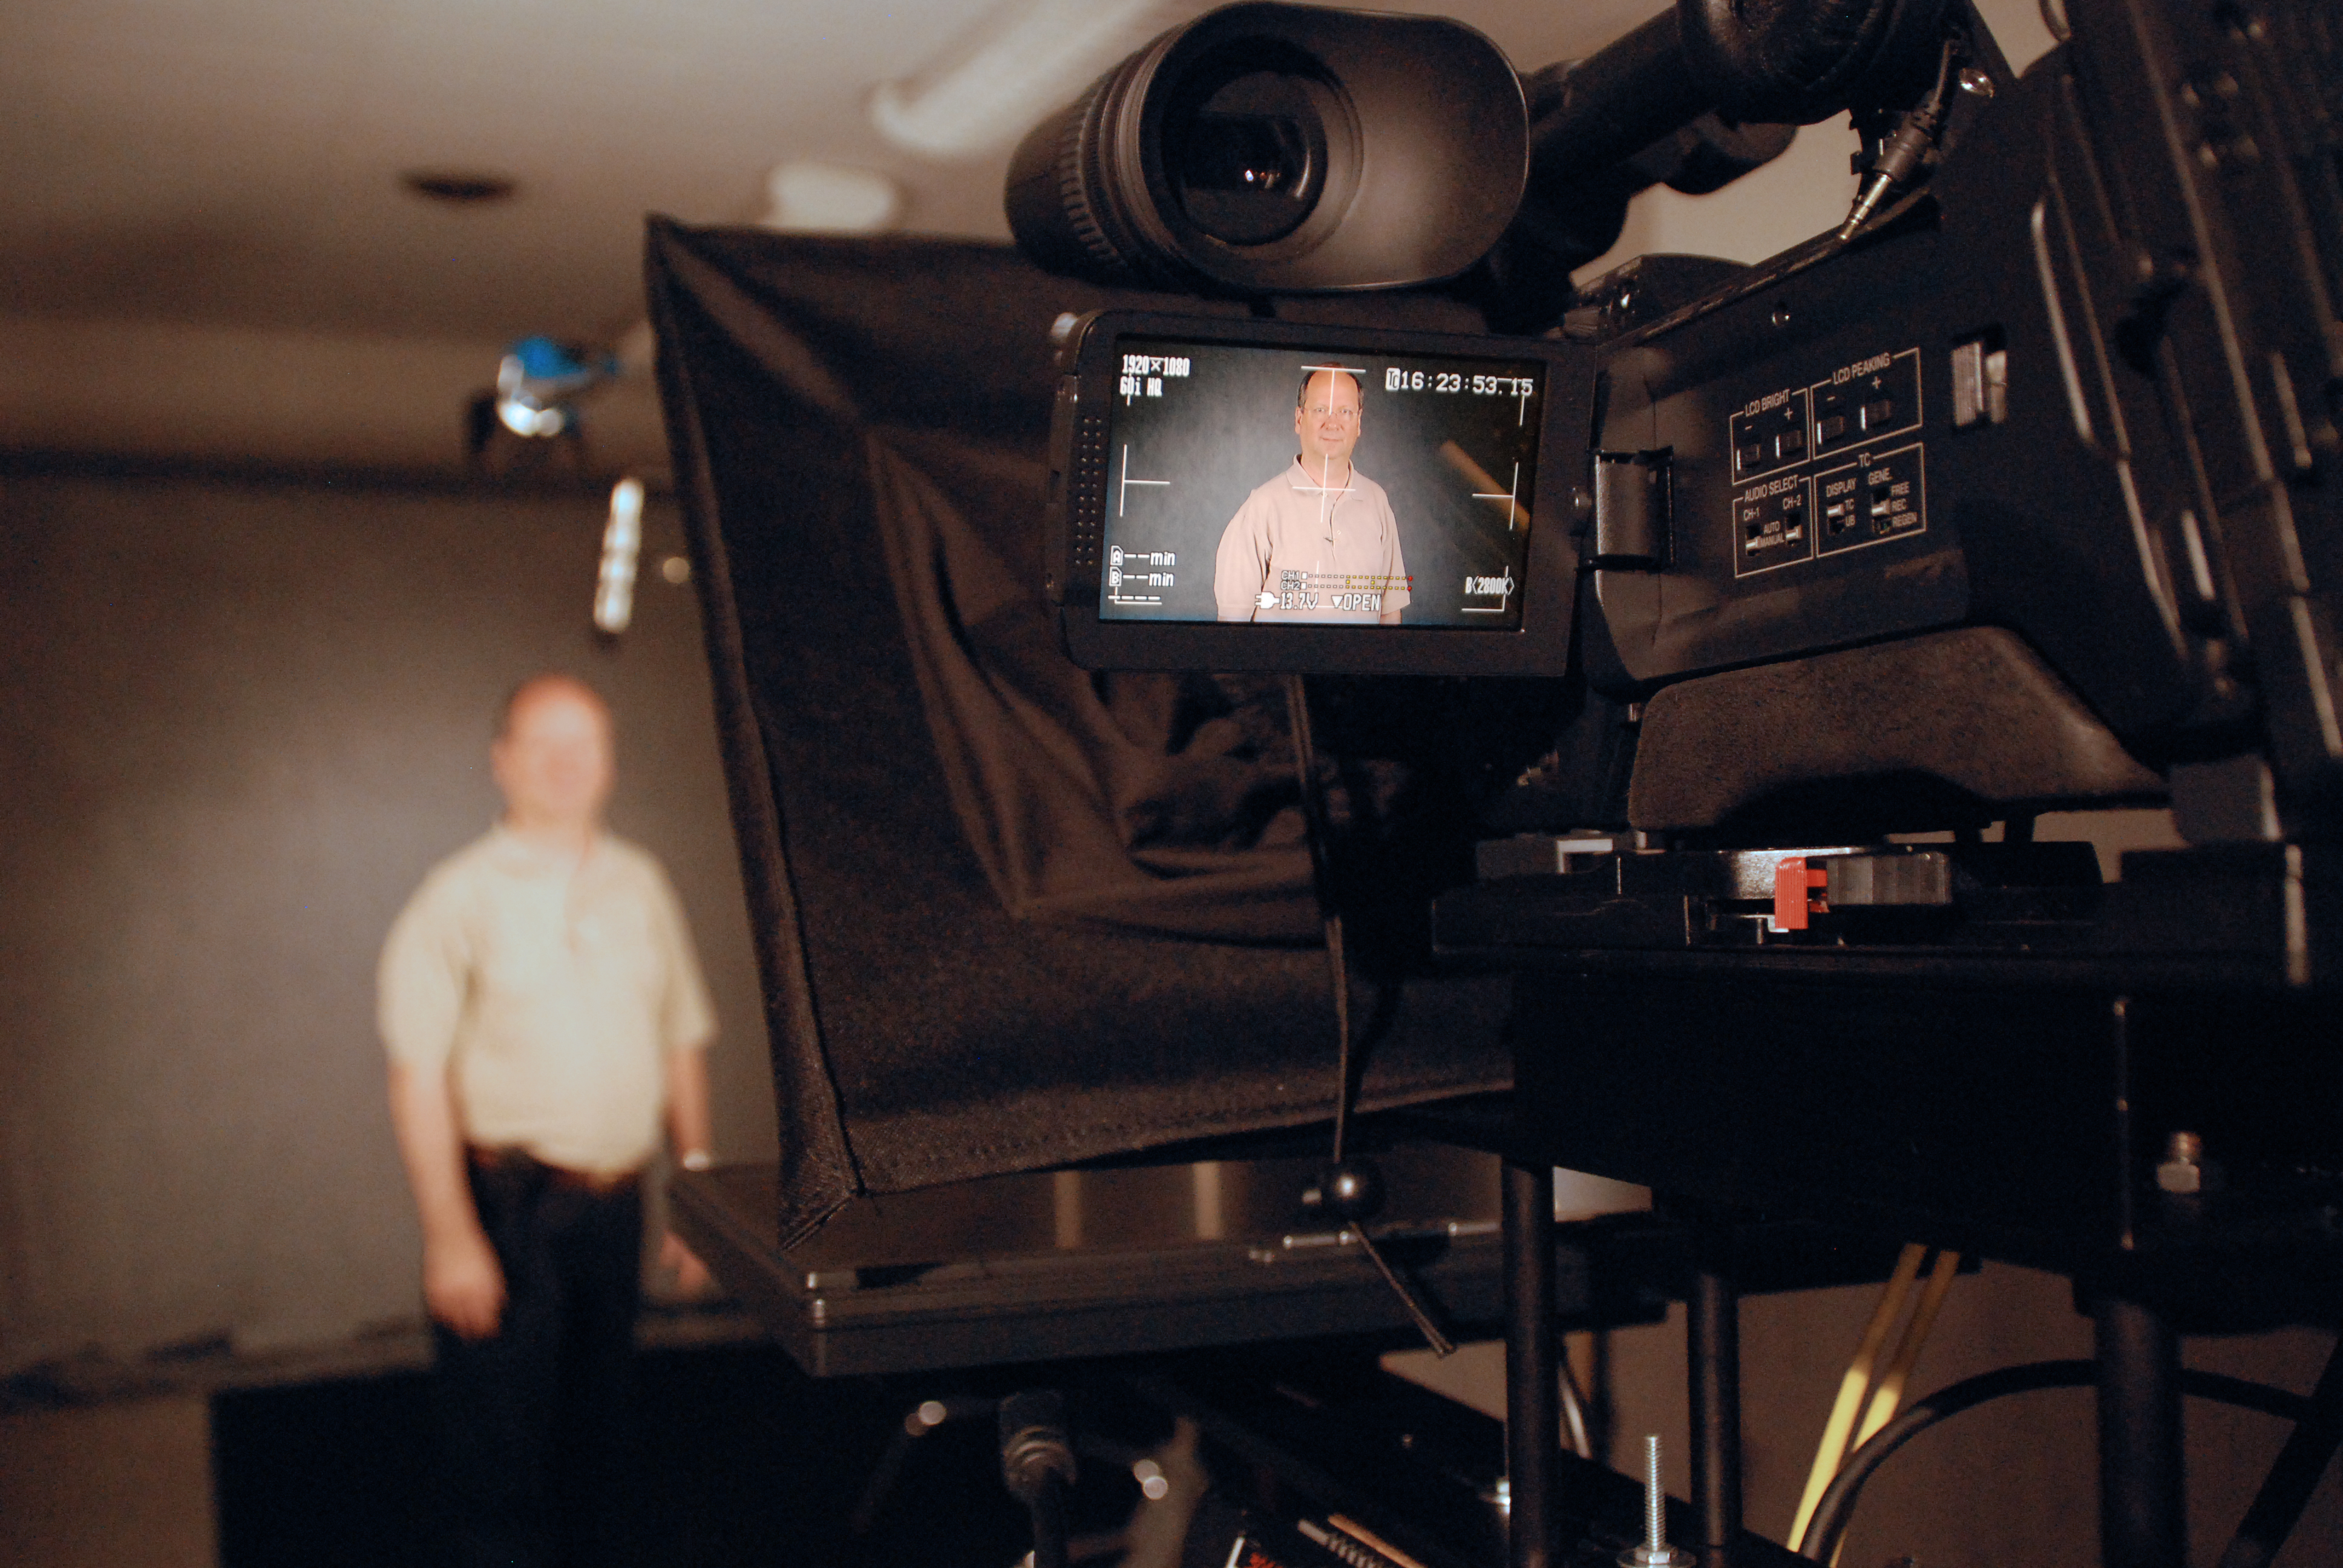 3 Reasons to Make Video Part of Your Marketing Plan